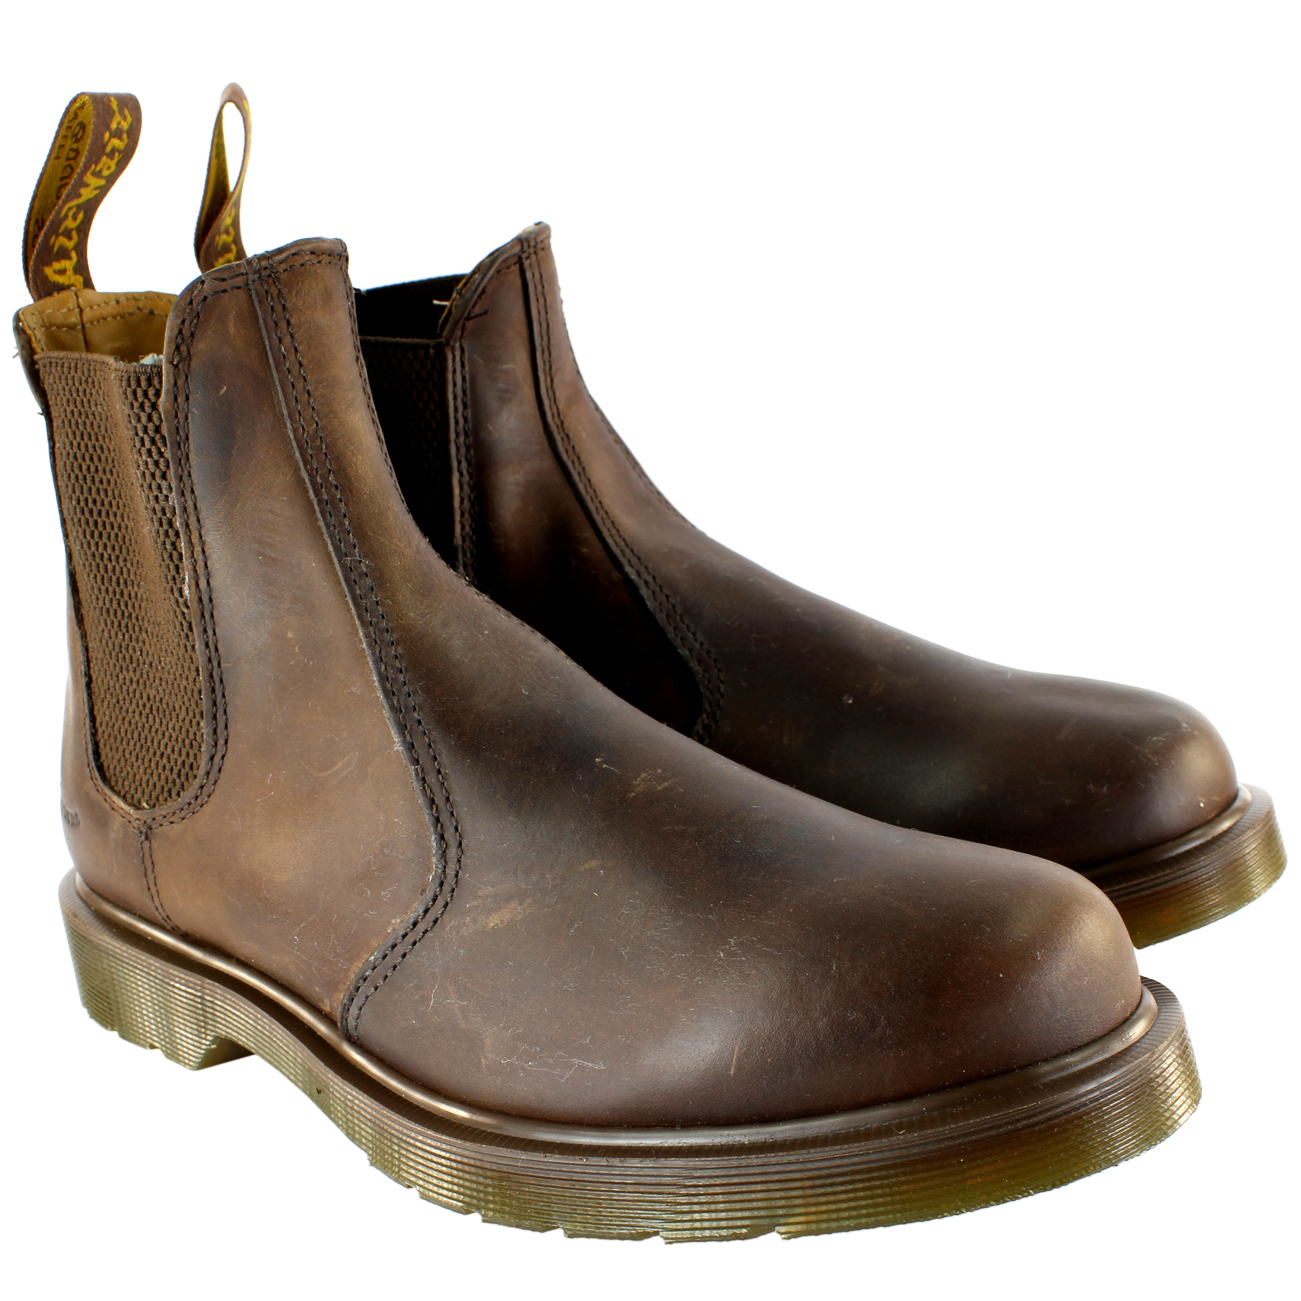 Details about Mens Dr Martens 2976 Classic Leather Chelsea Style Ankle High  Boots All Sizes